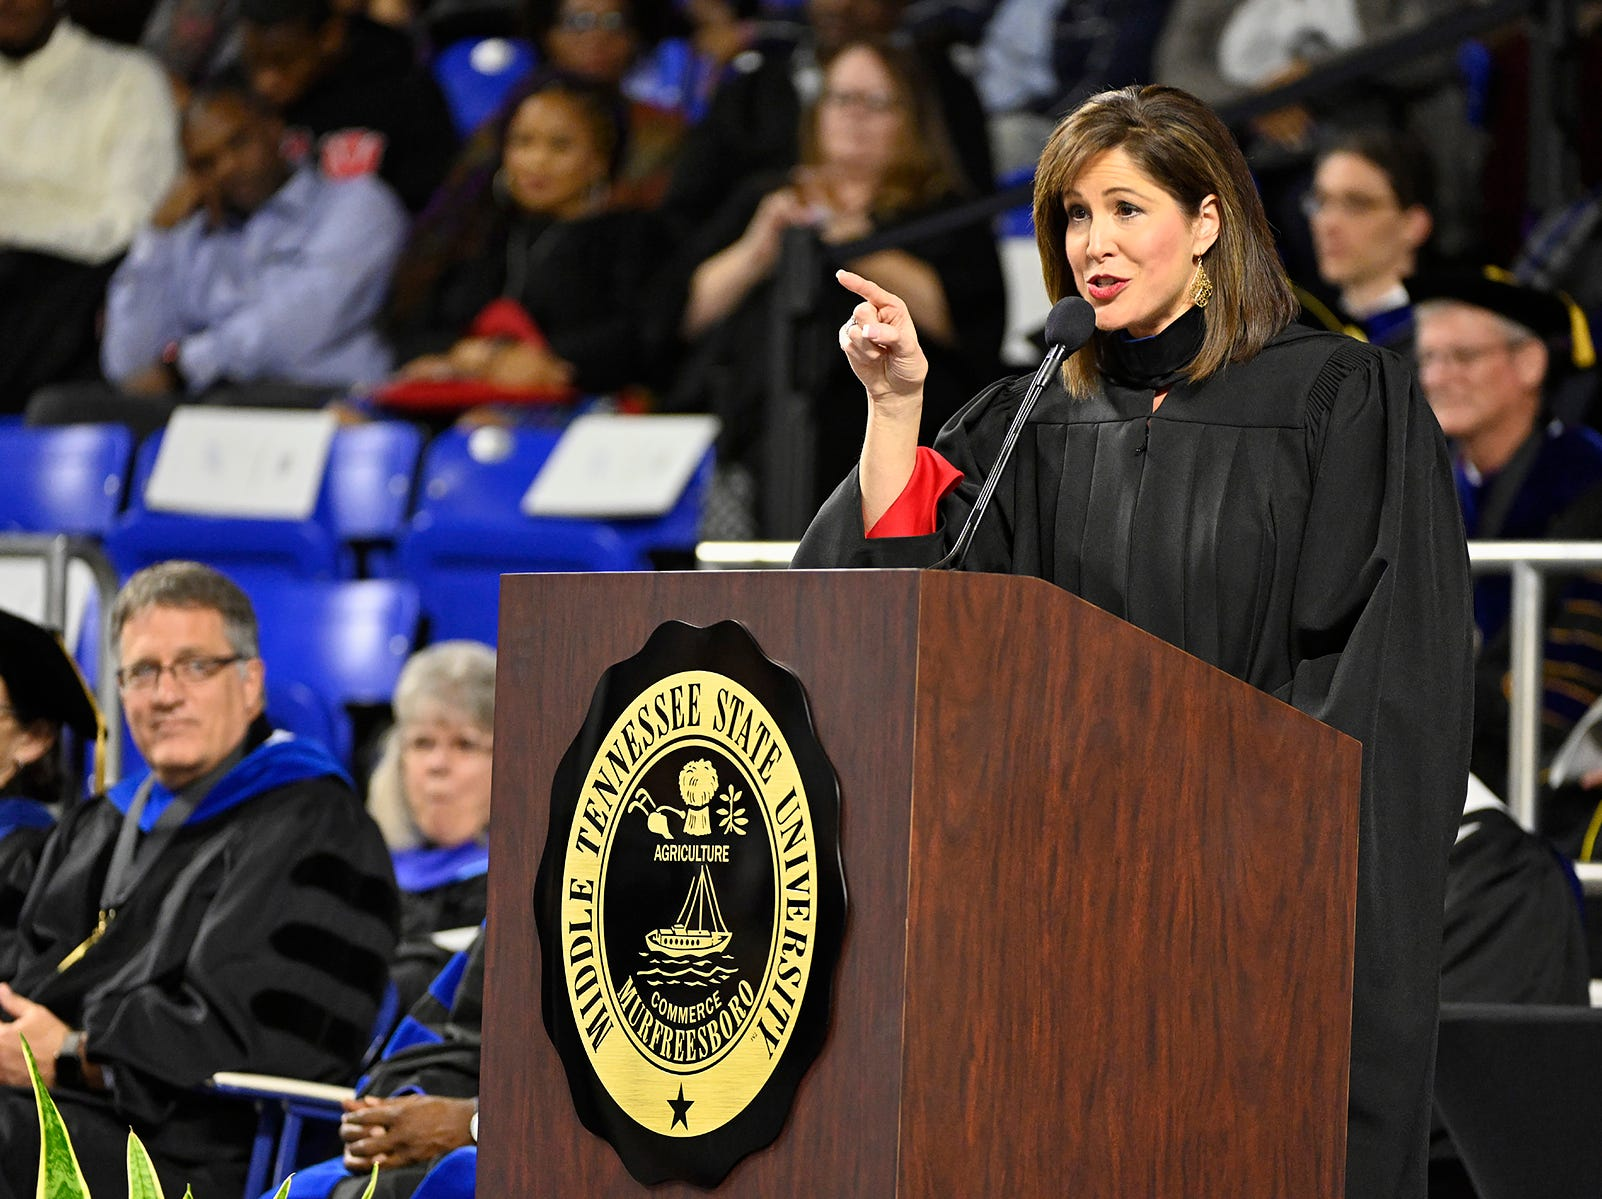 MTSU alumna Holly Thompson, a WSMV-Channel 4 news anchor, emphasizes one of her remarks Saturday, Dec. 15, during her address to graduating students at MTSU's fall 2018 afternoon commencement ceremony in Murphy Center. MTSU presented 1,731 degrees to students in dual ceremonies, including 1,471 undergraduates and 260 graduate students in the celebrations.